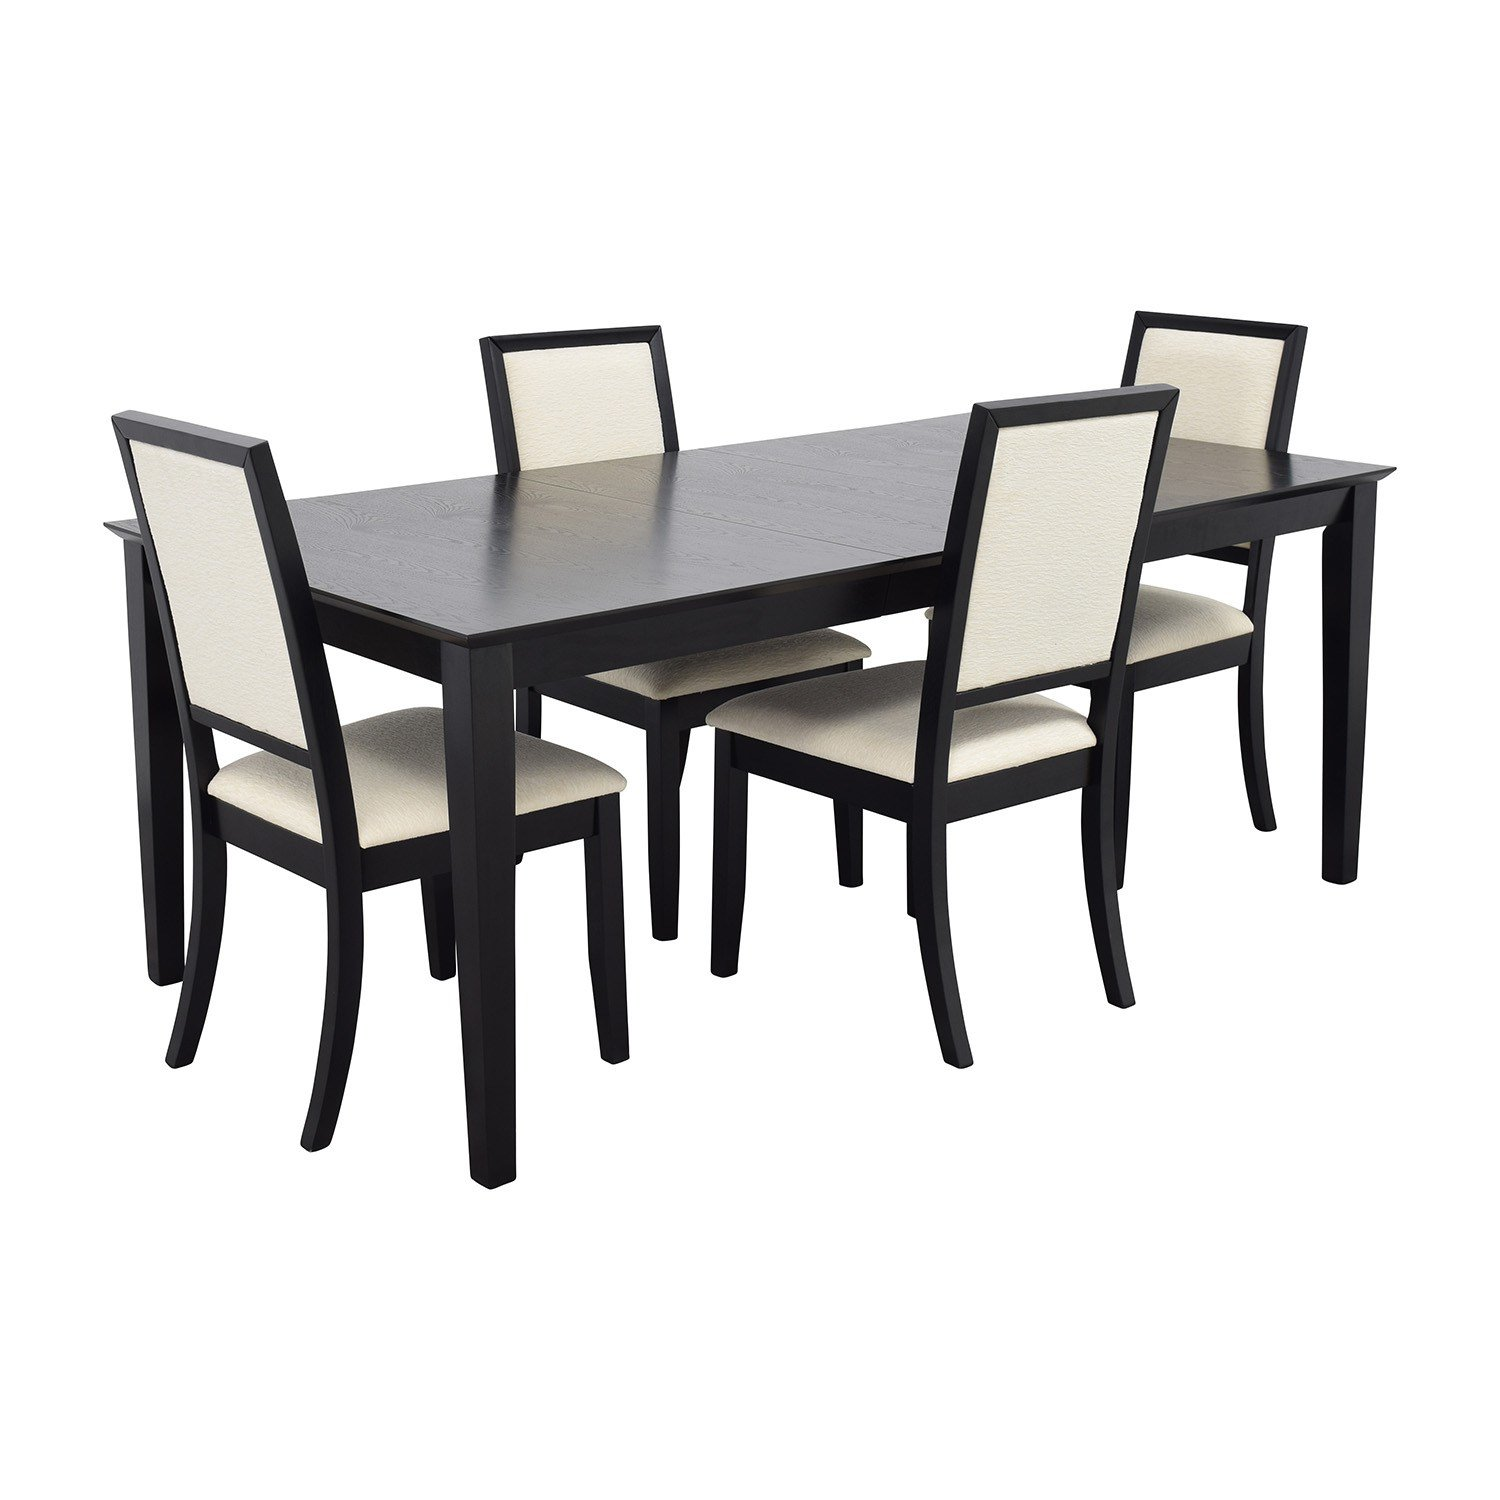 Best 72 Off Harlem Furniture Harlem Furniture Black Dining With Pictures